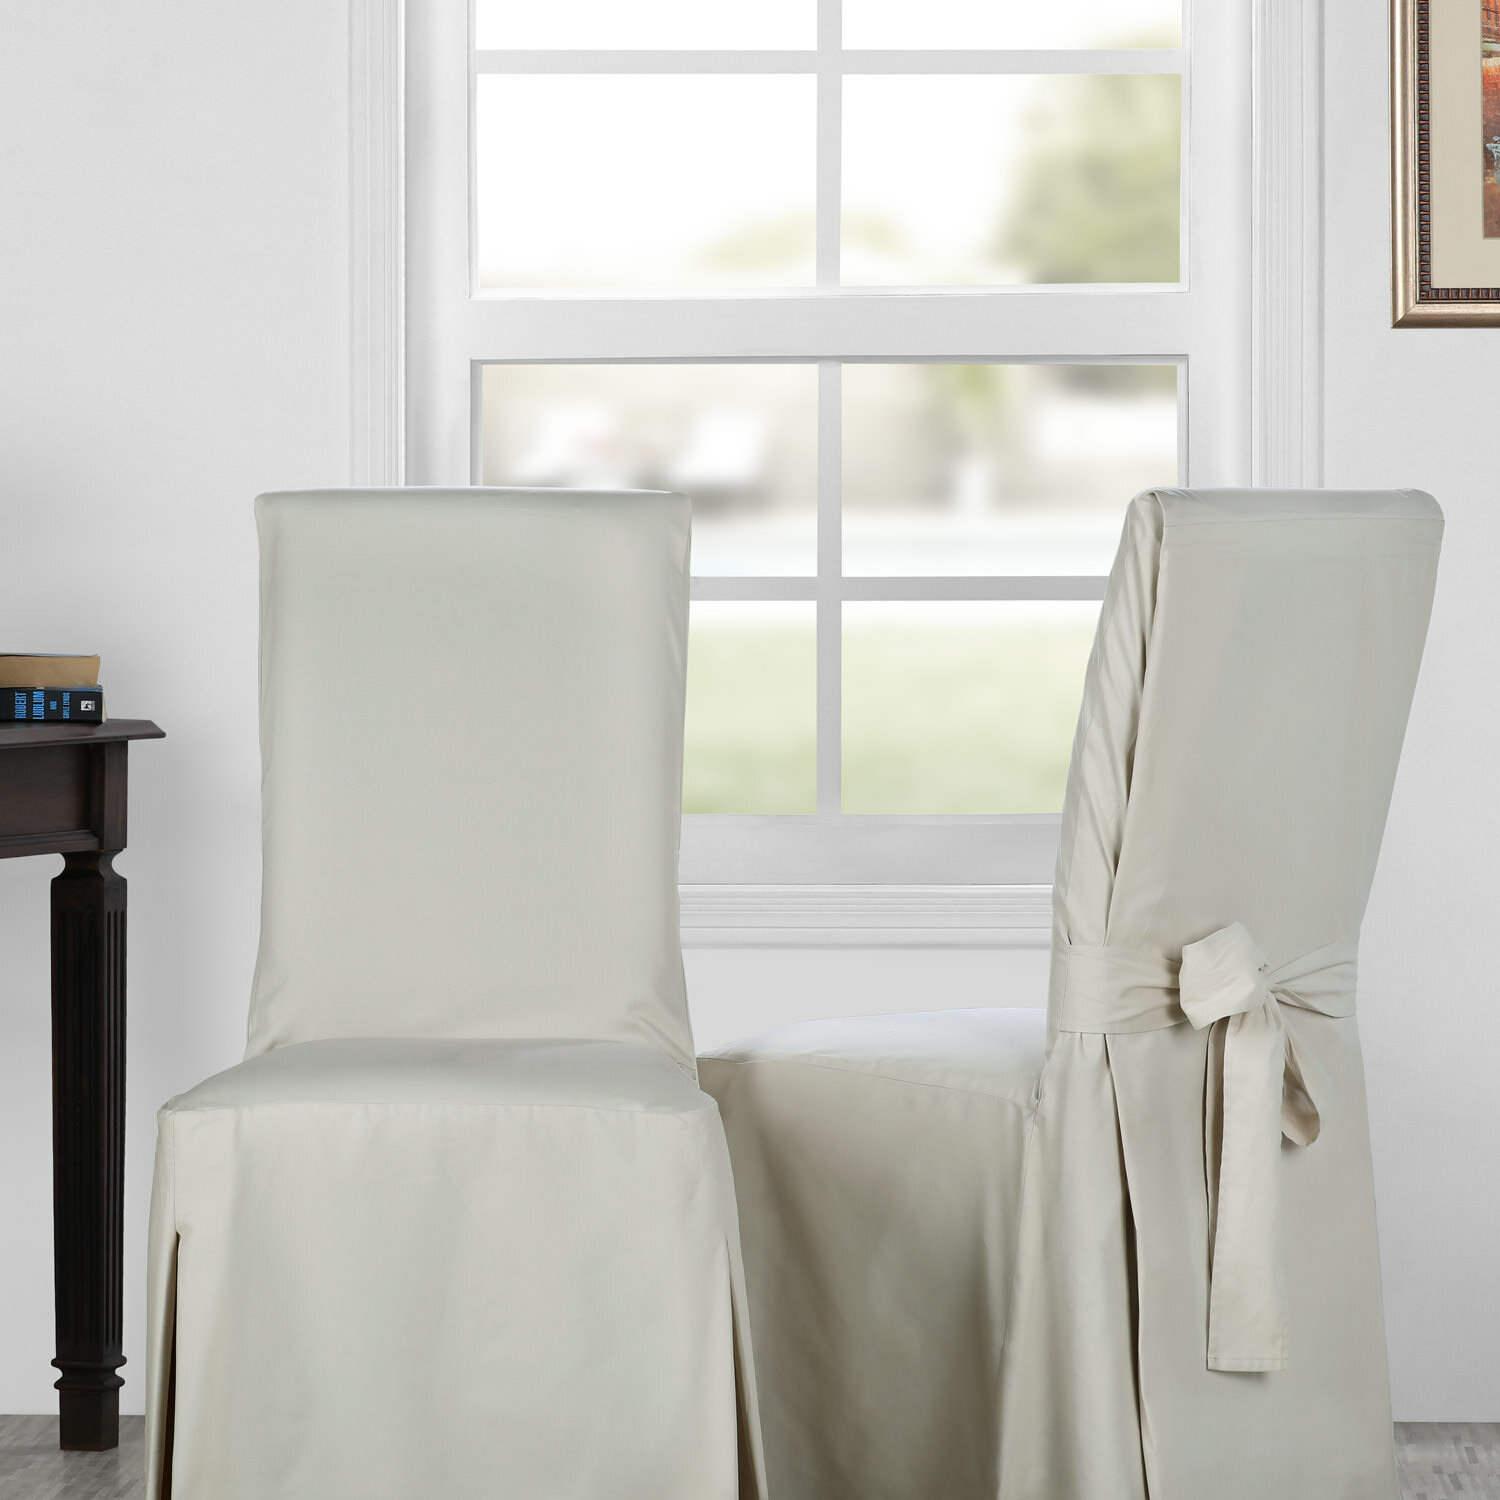 Astoria Grand Dining Chair Slipcover